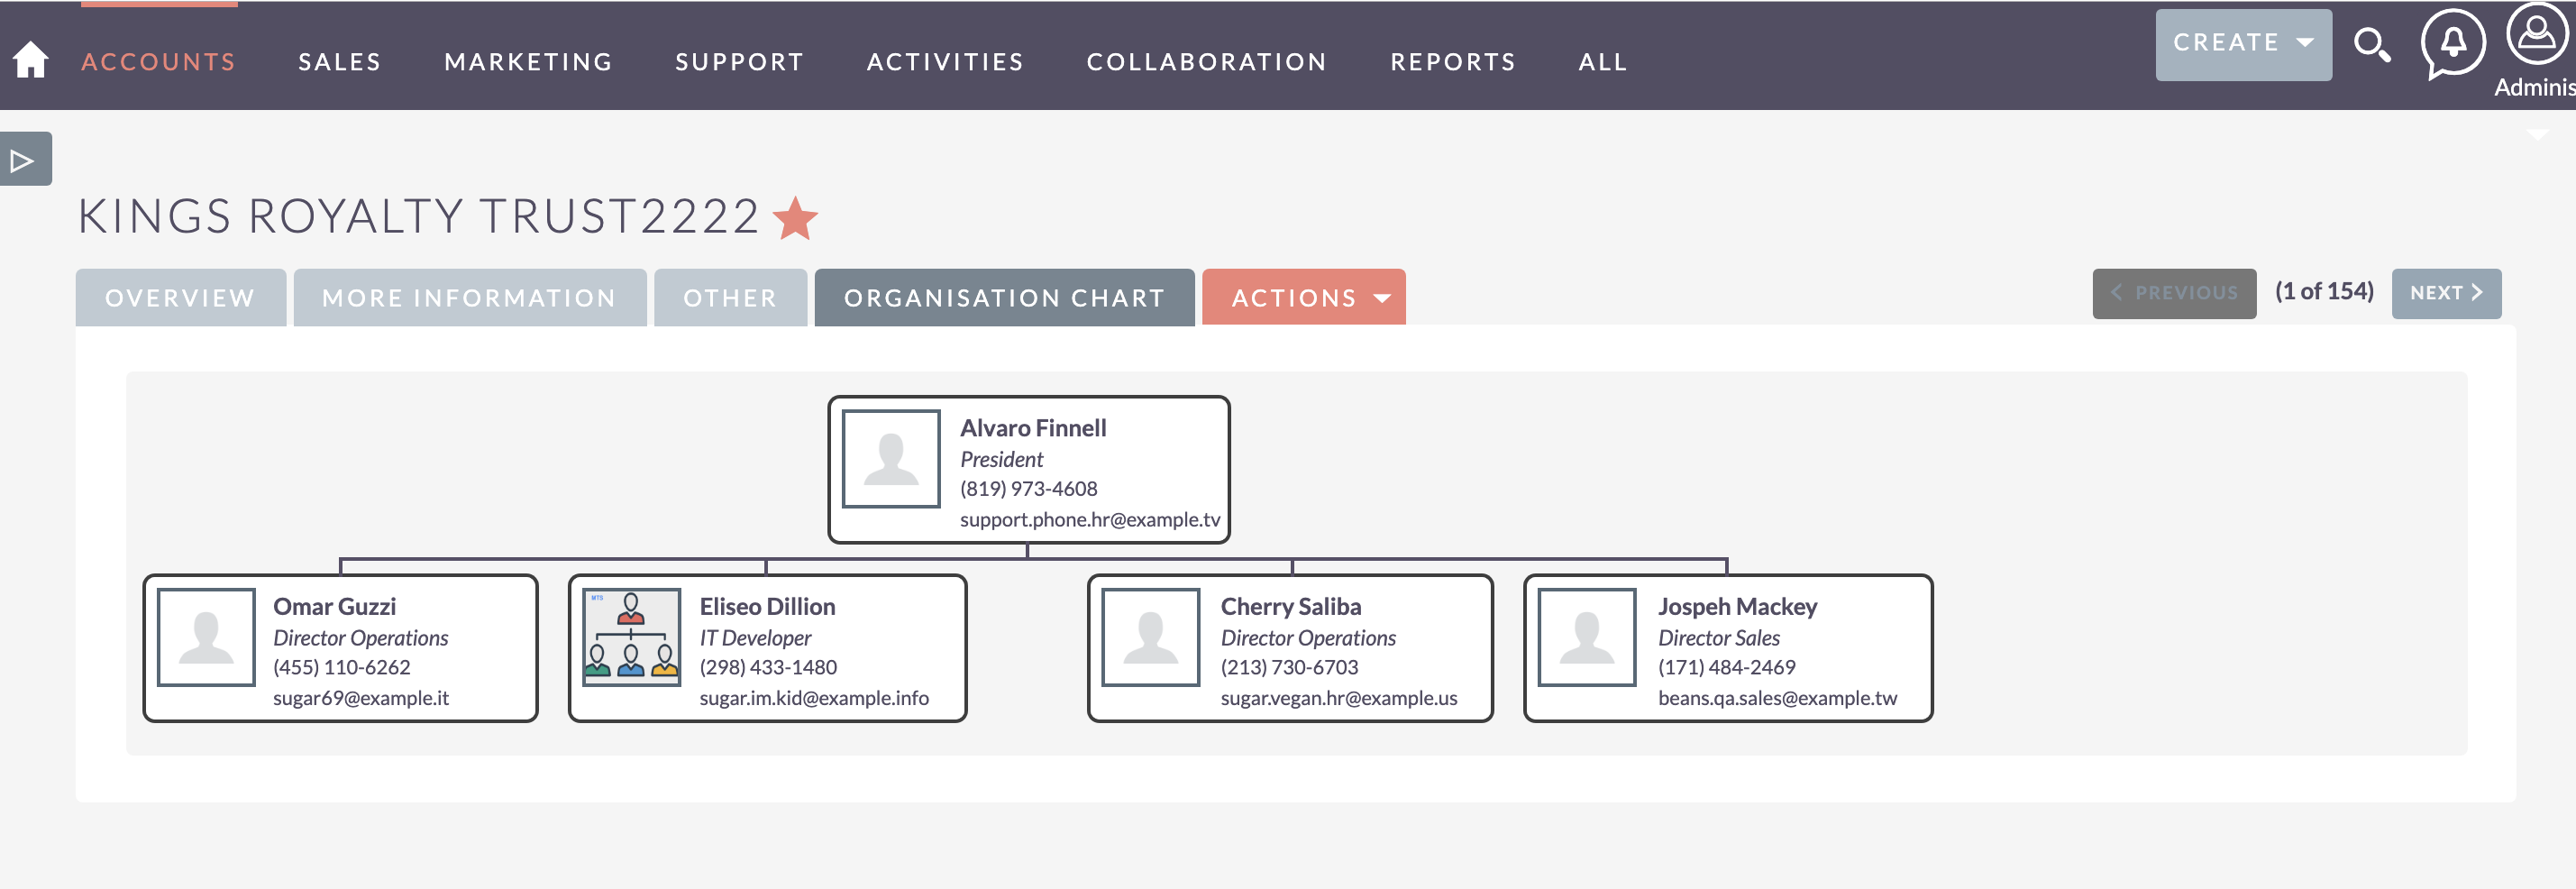 Org chart in Account view